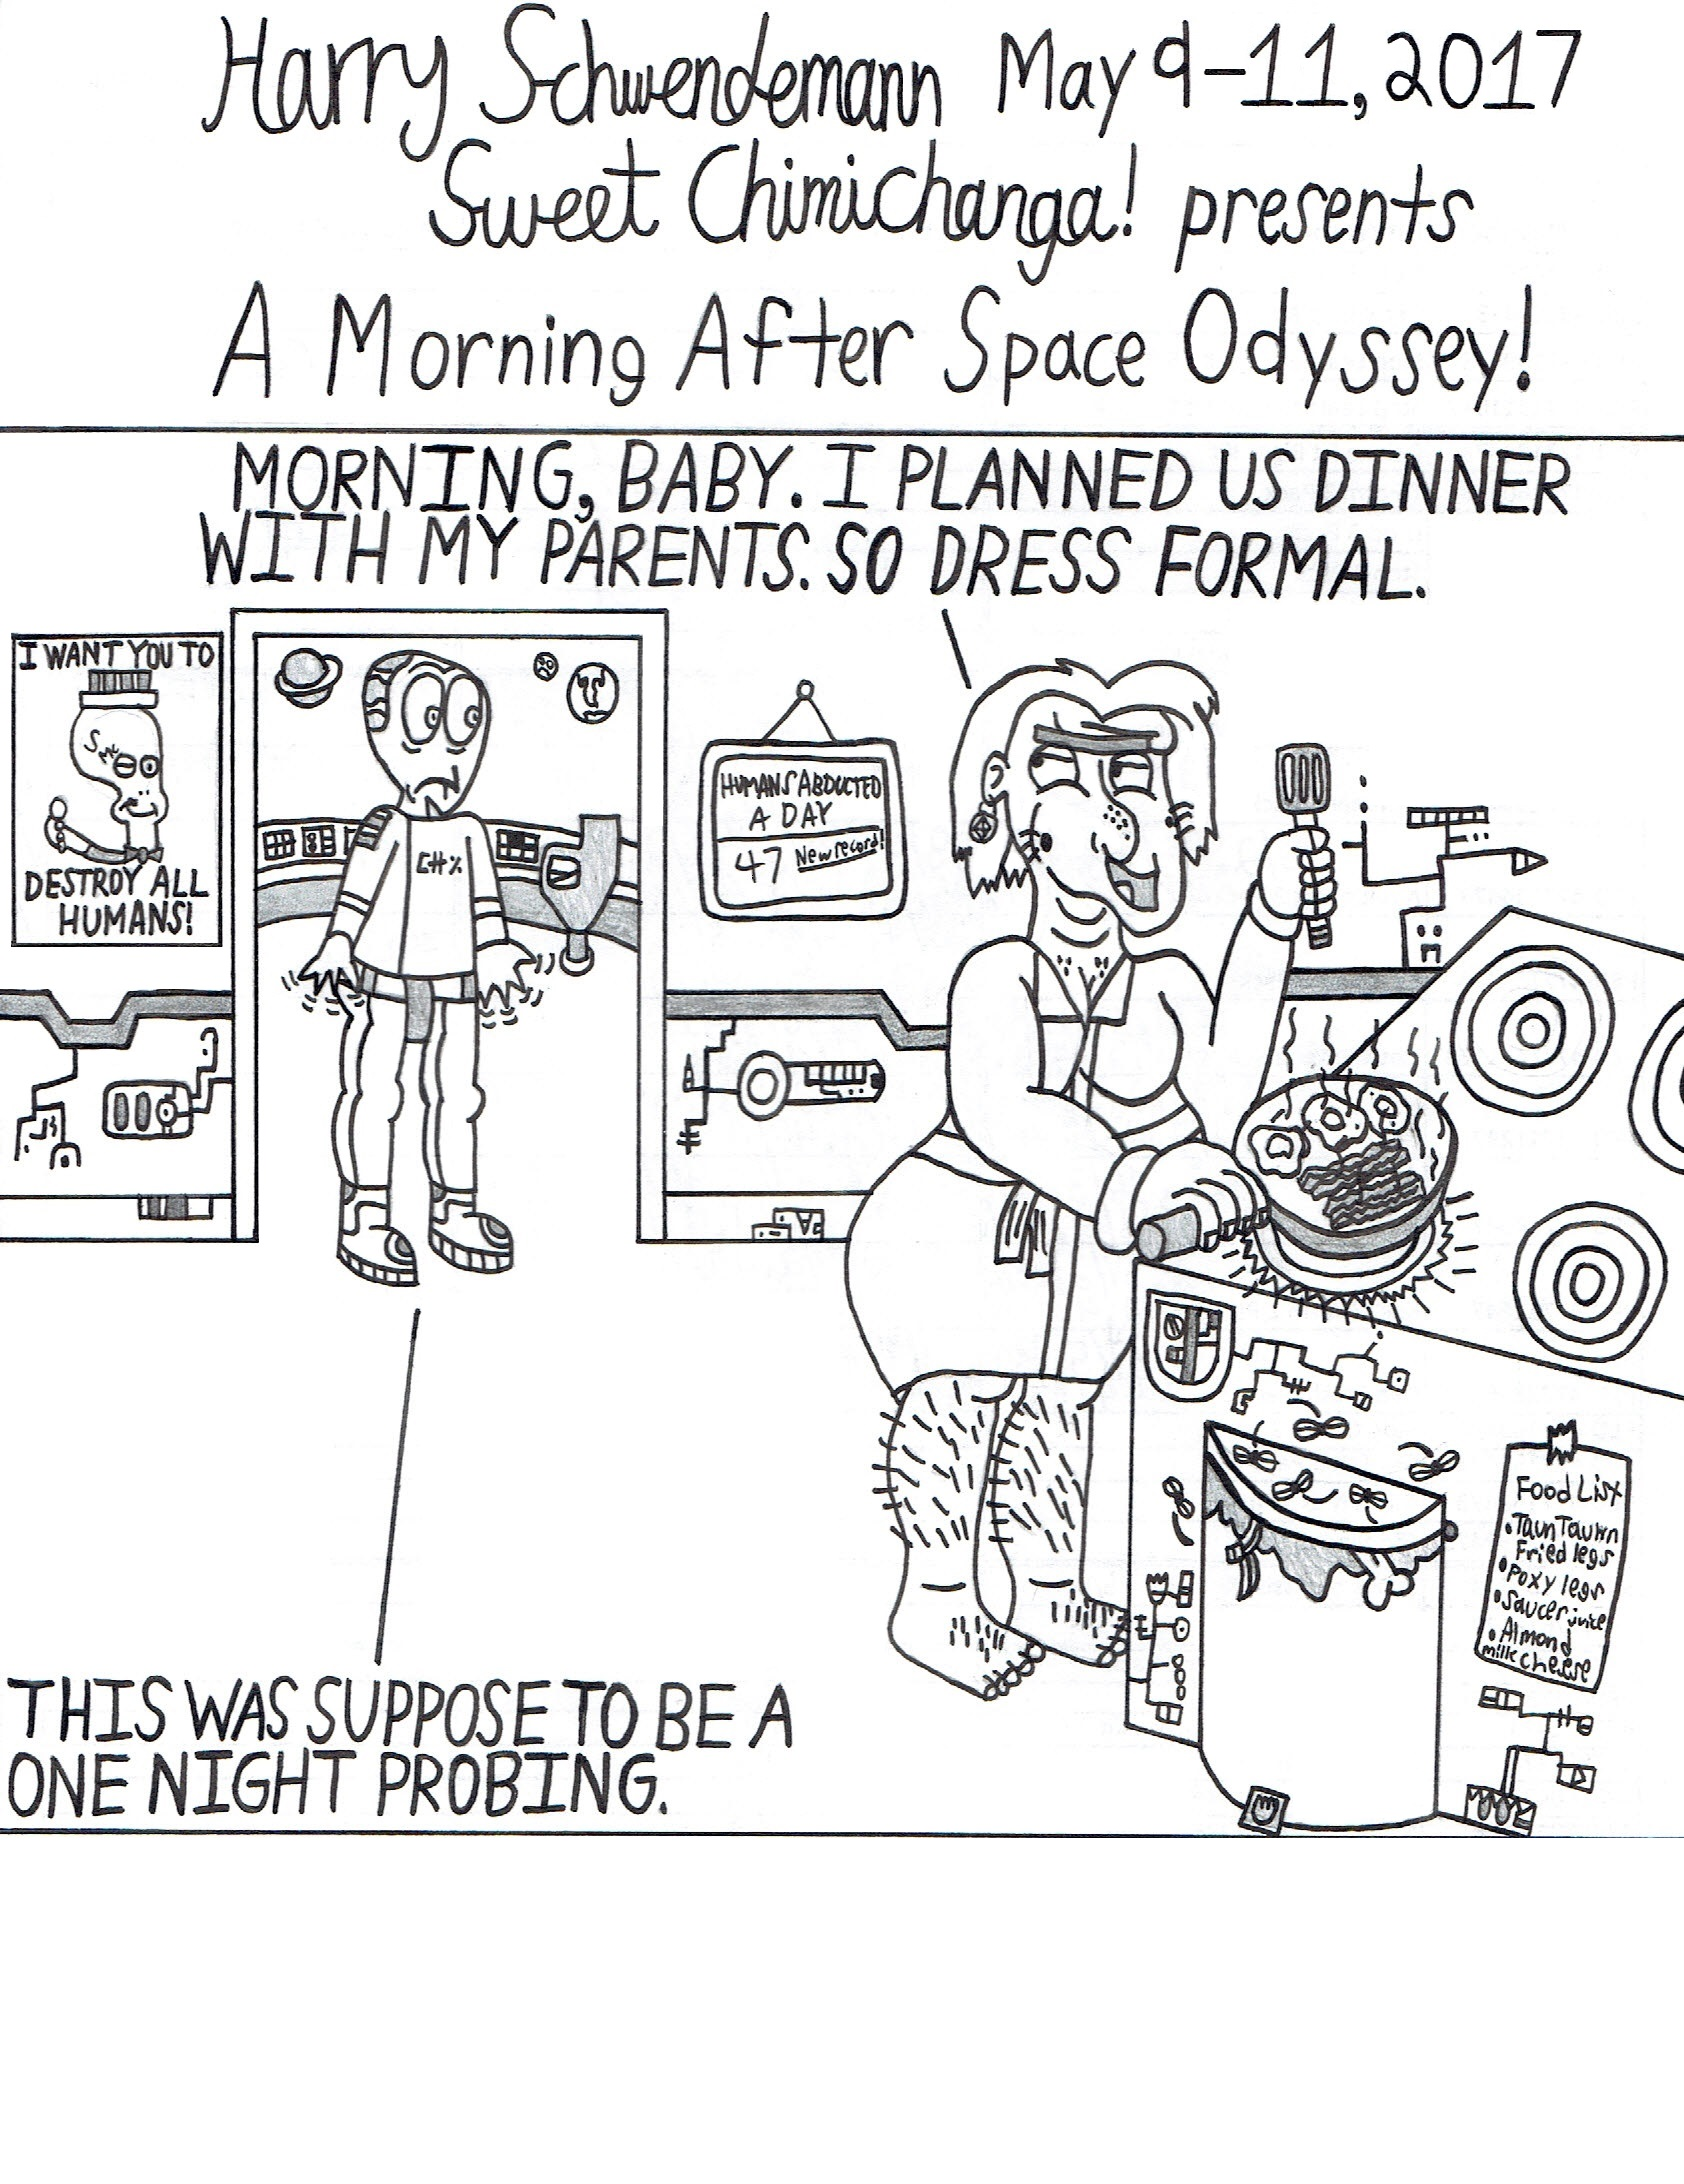 A Morning After Space Odyssey!